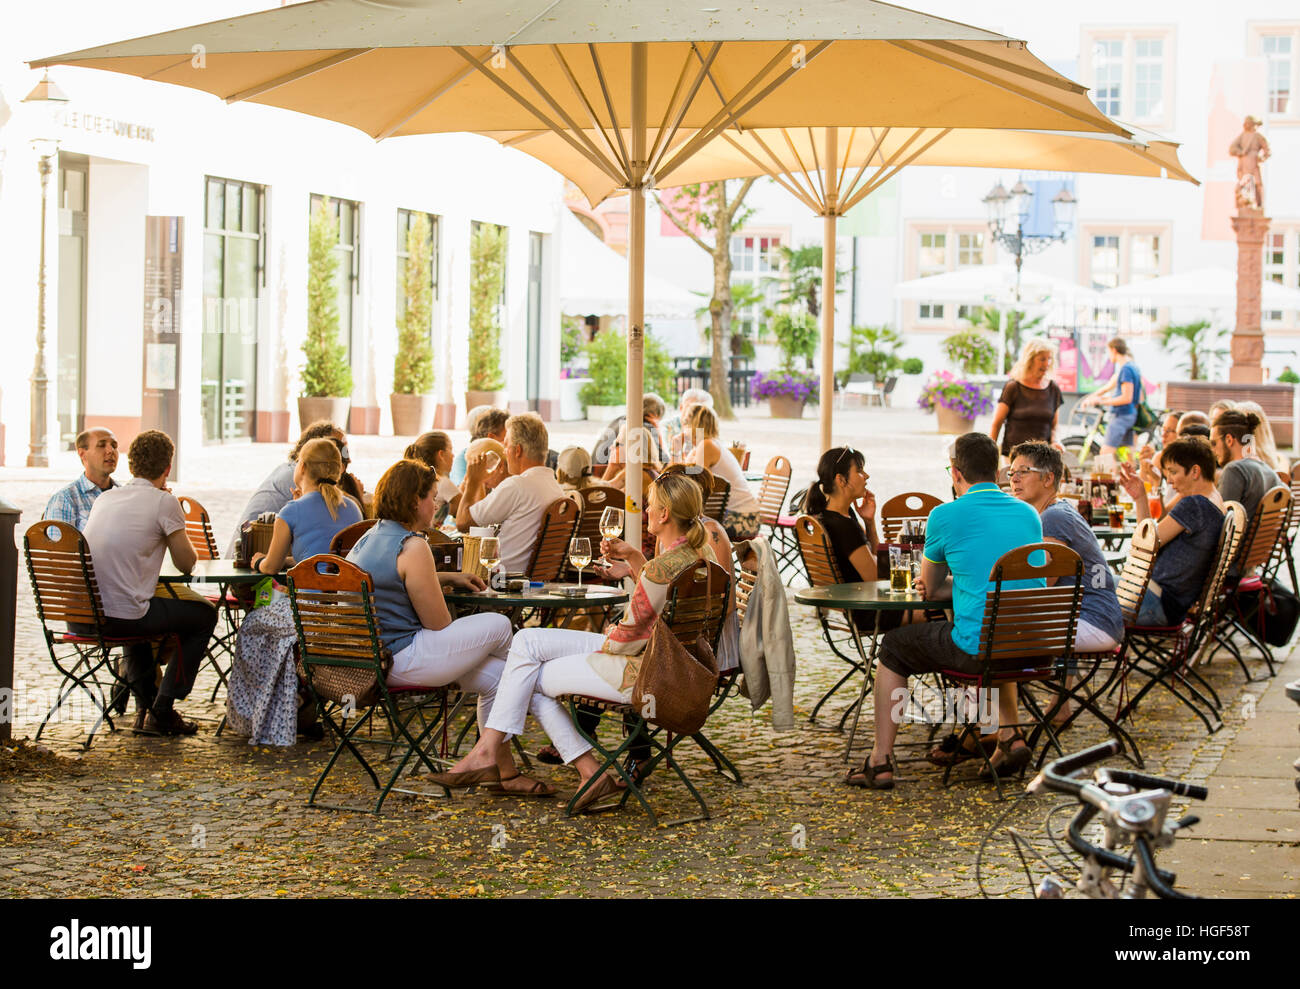 Restaurant and beer garden in front of Ettlinger Castle, Ettlingen, Black Forest, Baden-Württemberg, Germany - Stock Image